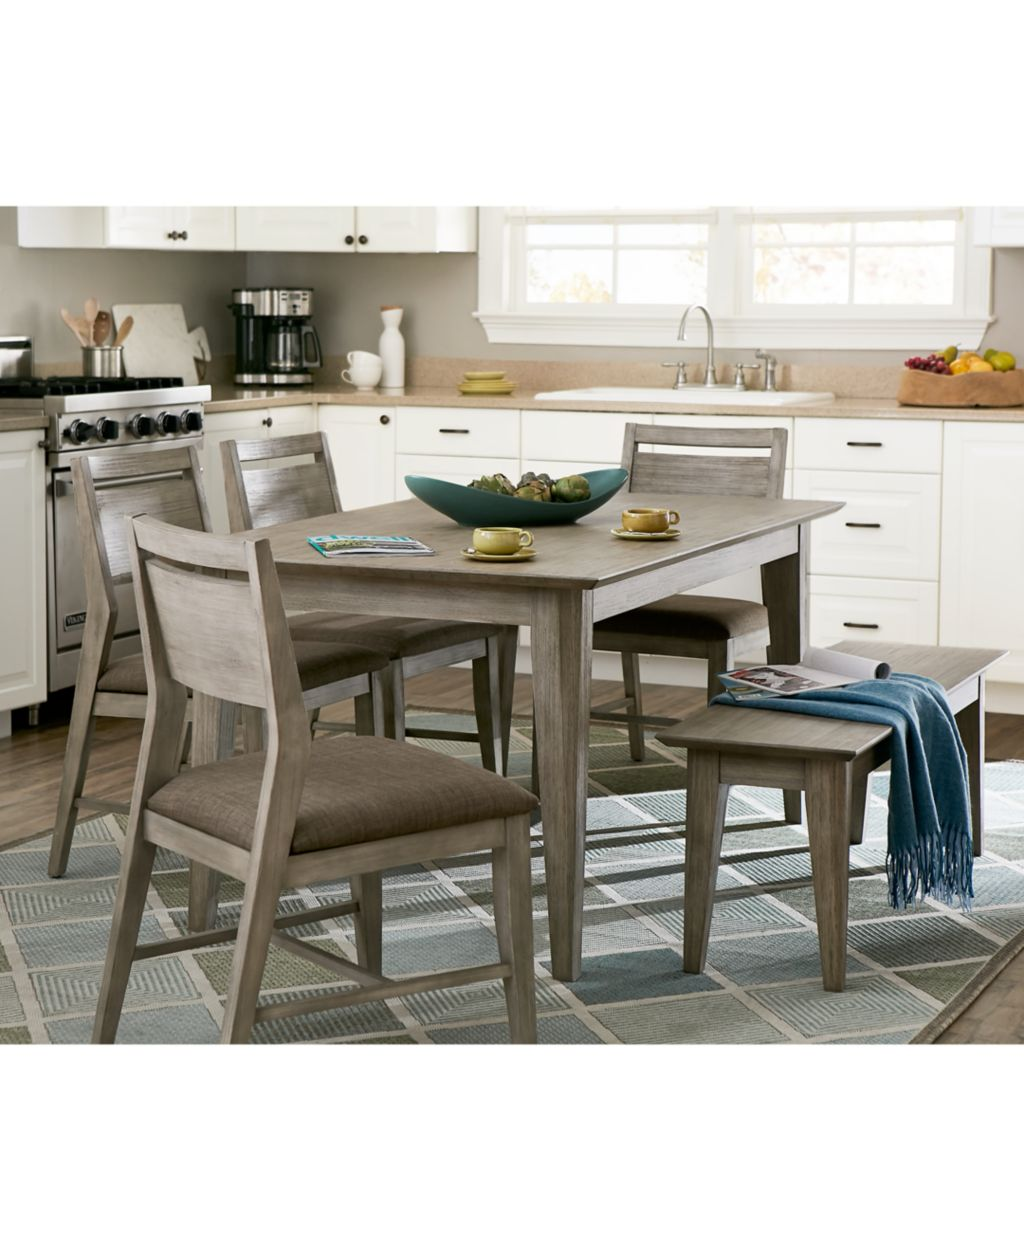 Kips Cove Dining Furniture 7 Pc Set Dining Table amp 6  : 3635616fpx from www.bestlatest.net size 1024 x 1251 jpeg 129kB